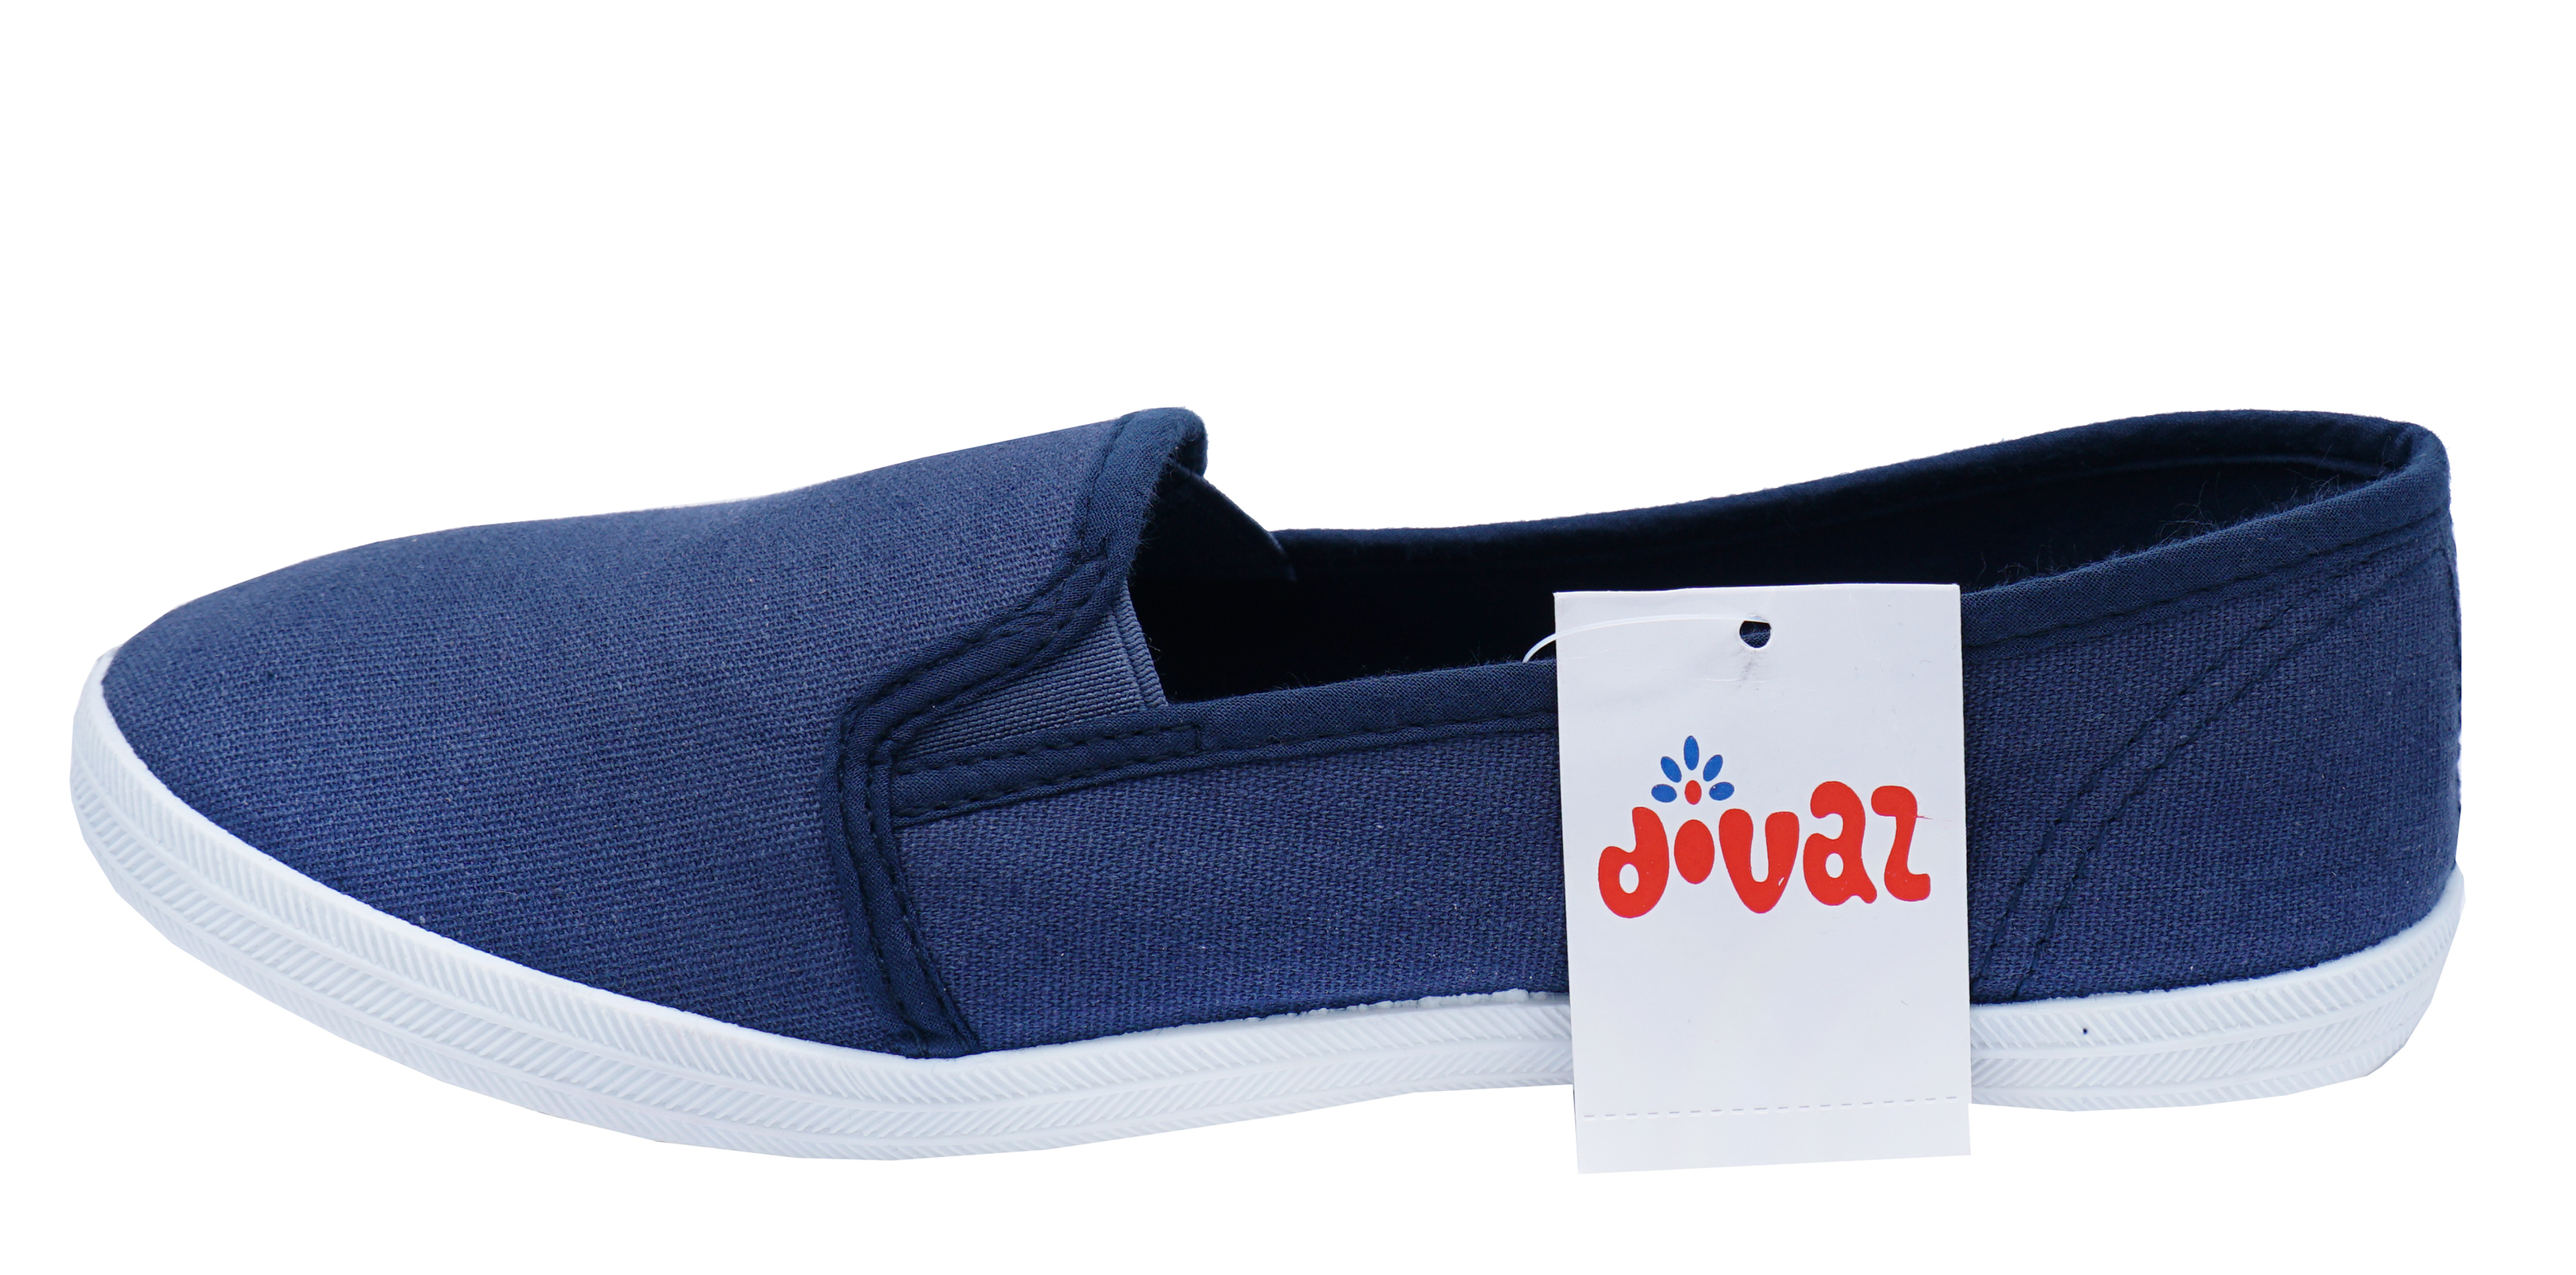 WOMENS BLUE SLIP-ON COMFY CASUAL PLIMSOLLS CANVAS PUMPS HOLIDAY SHOES 3-8